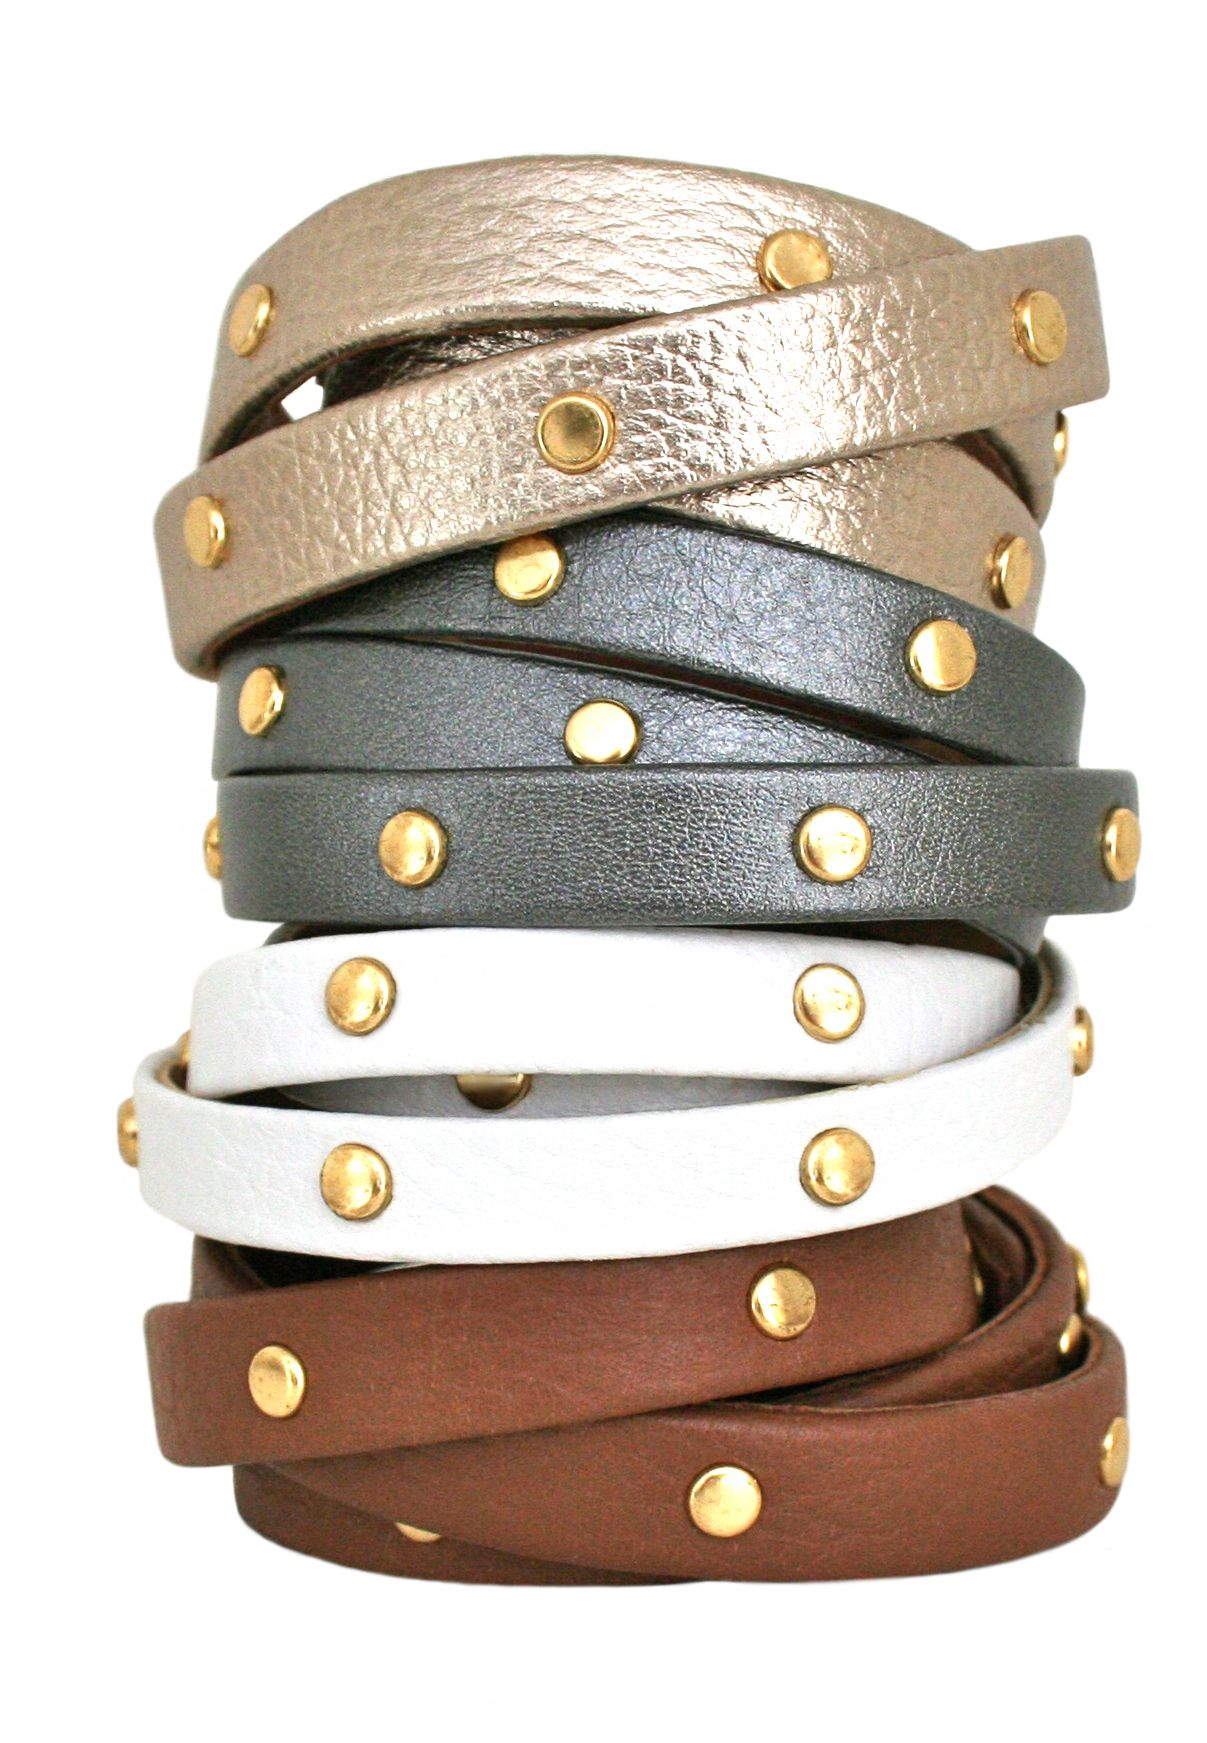 Caroline Triple Wrap Bracelets as seen on GMA's Deals and Steals